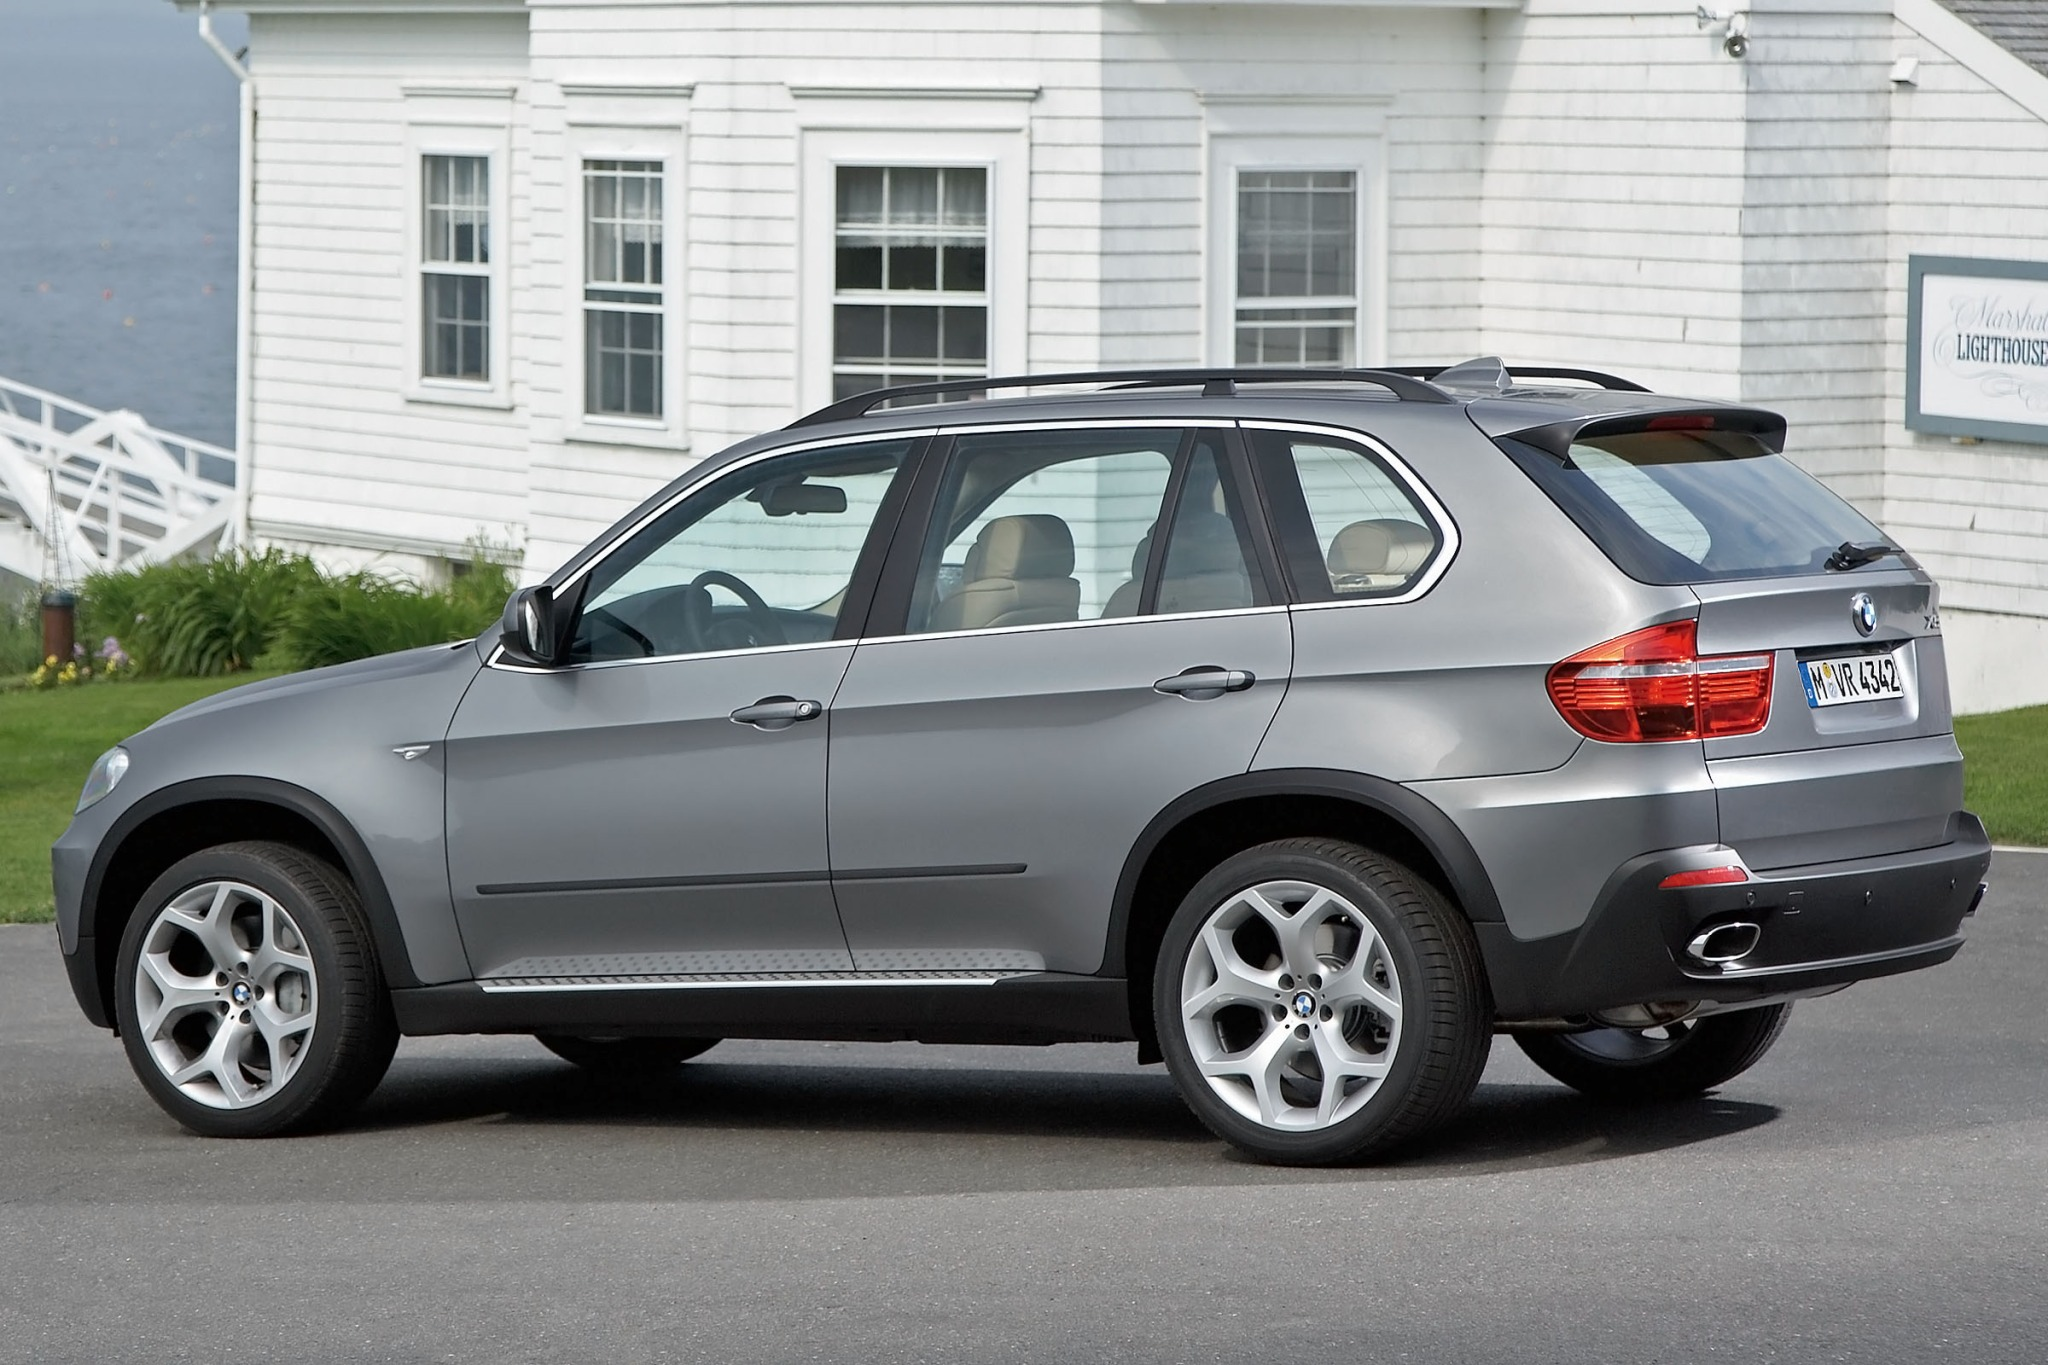 2007 BMW X5 Information and photos ZombieDrive